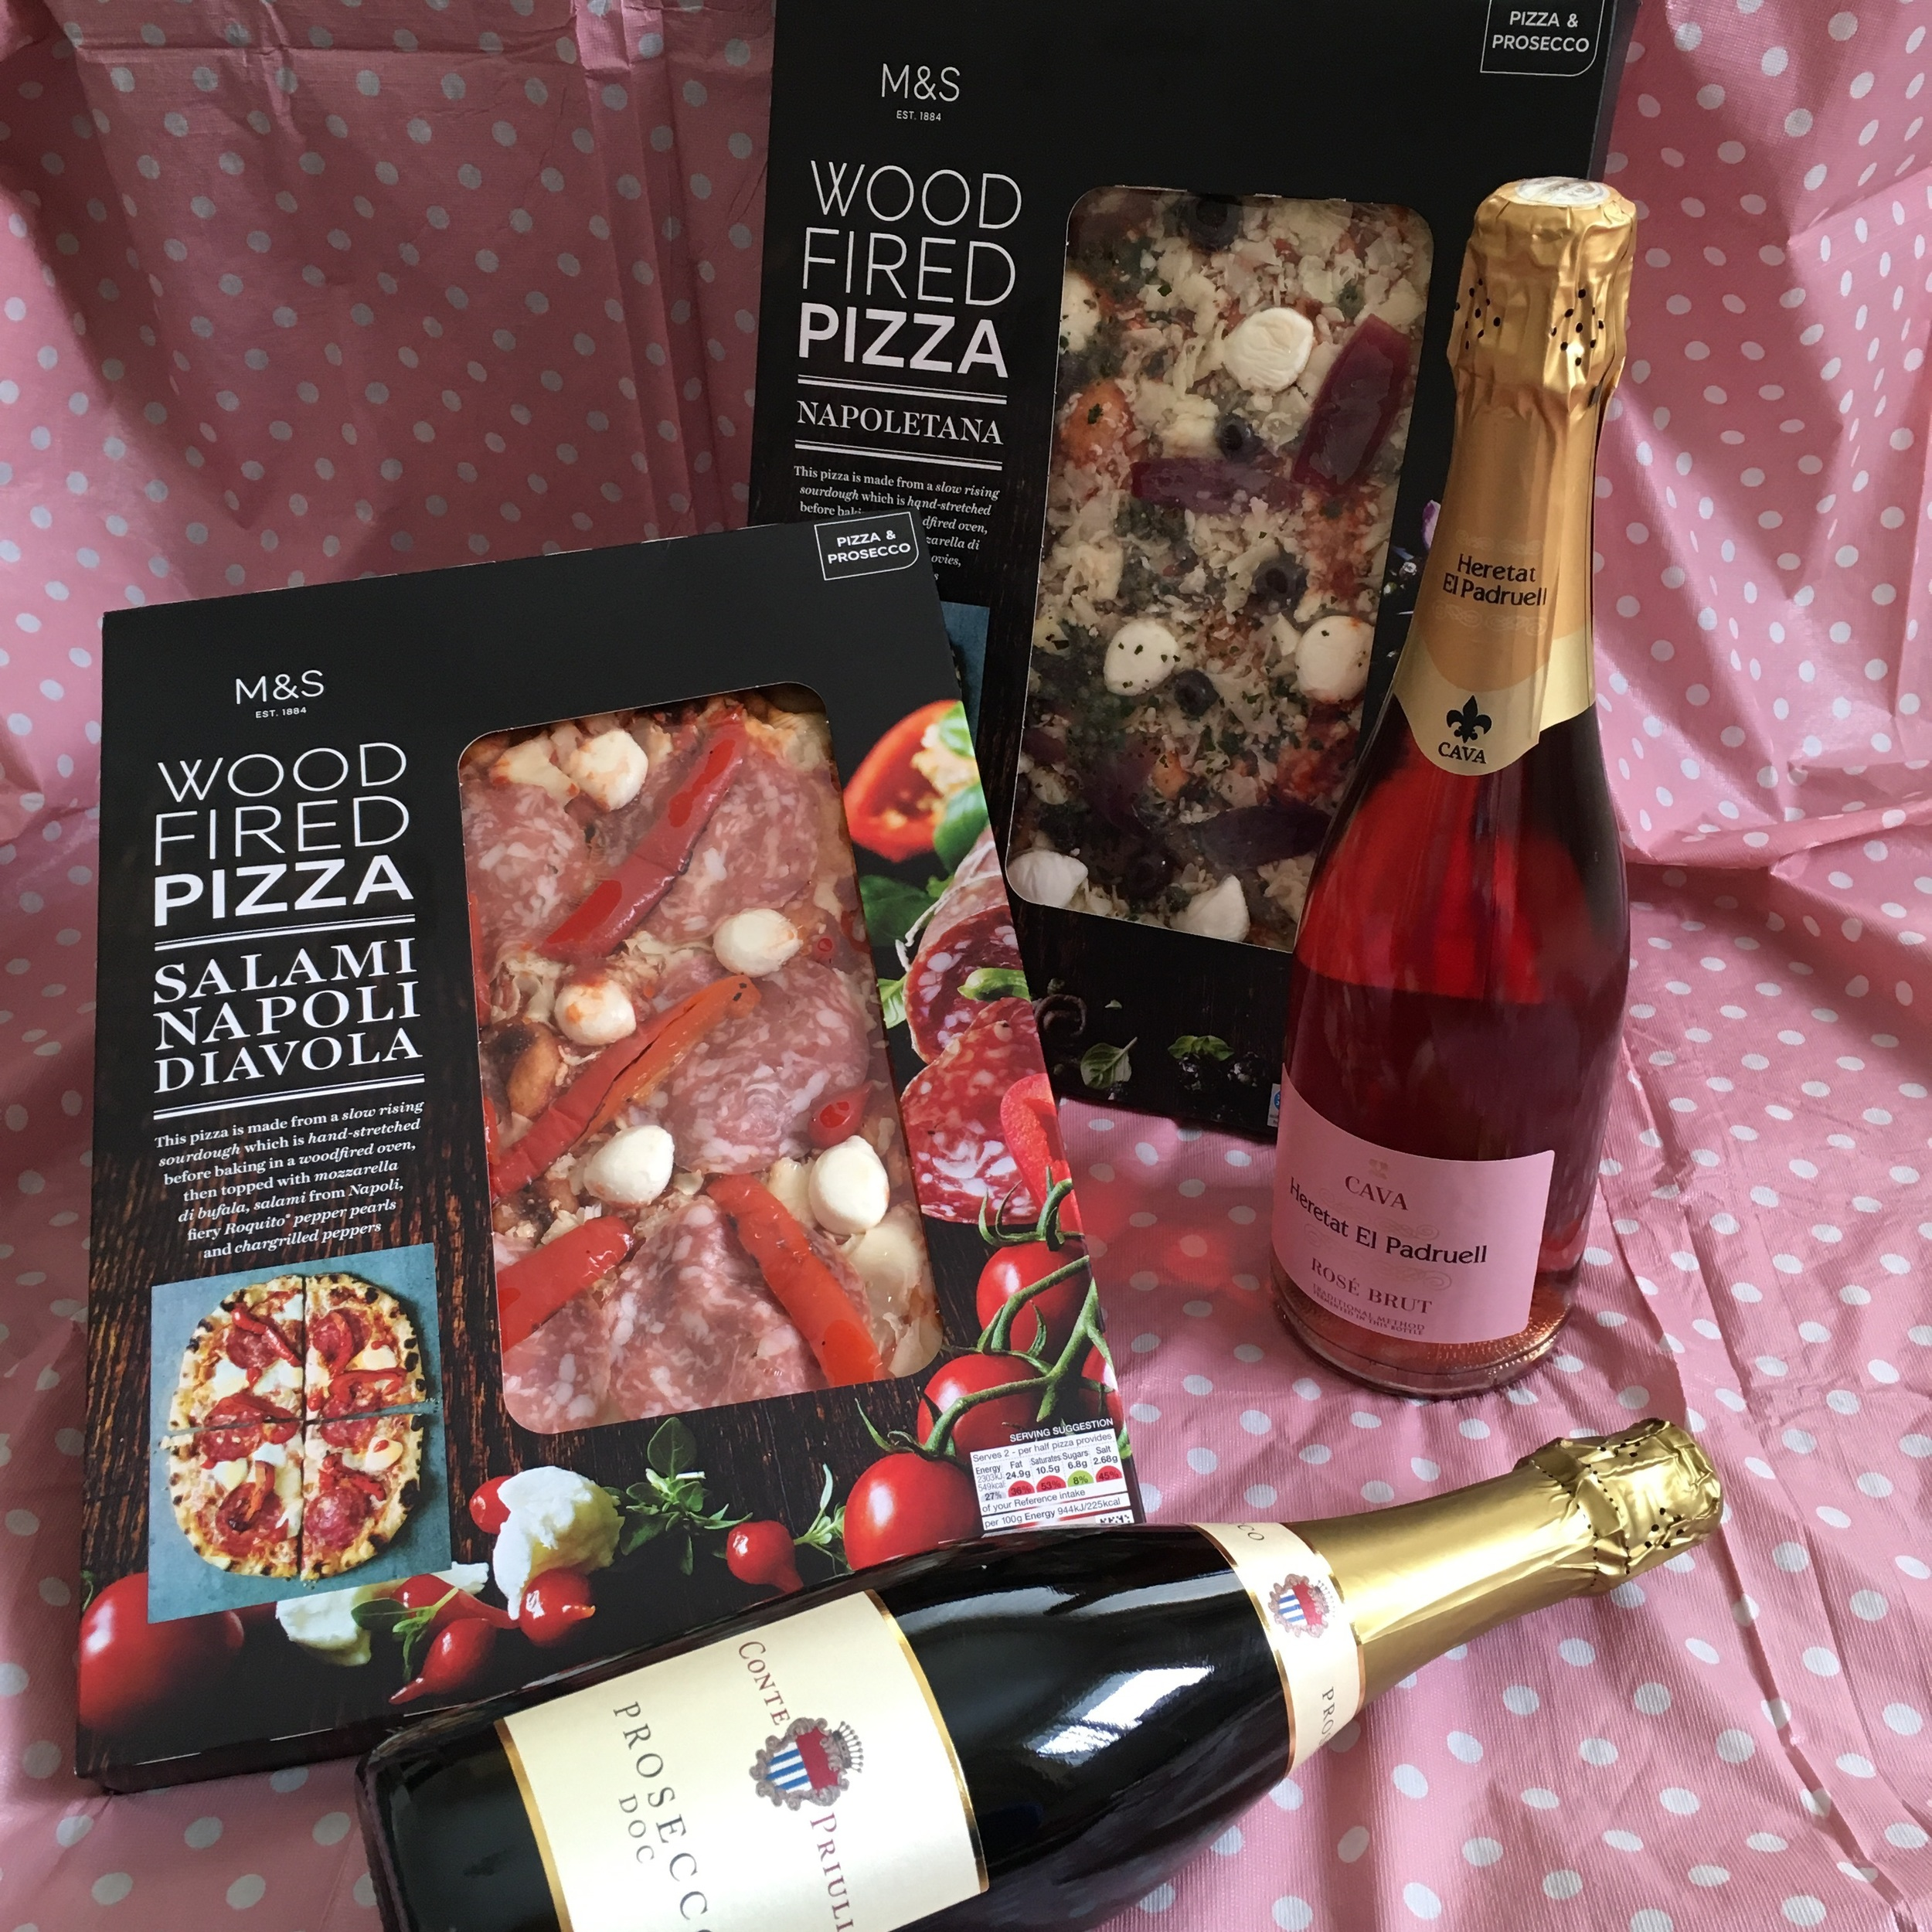 Pizza Prosecco 10 Deal A Summer Of Sweets At Ms The